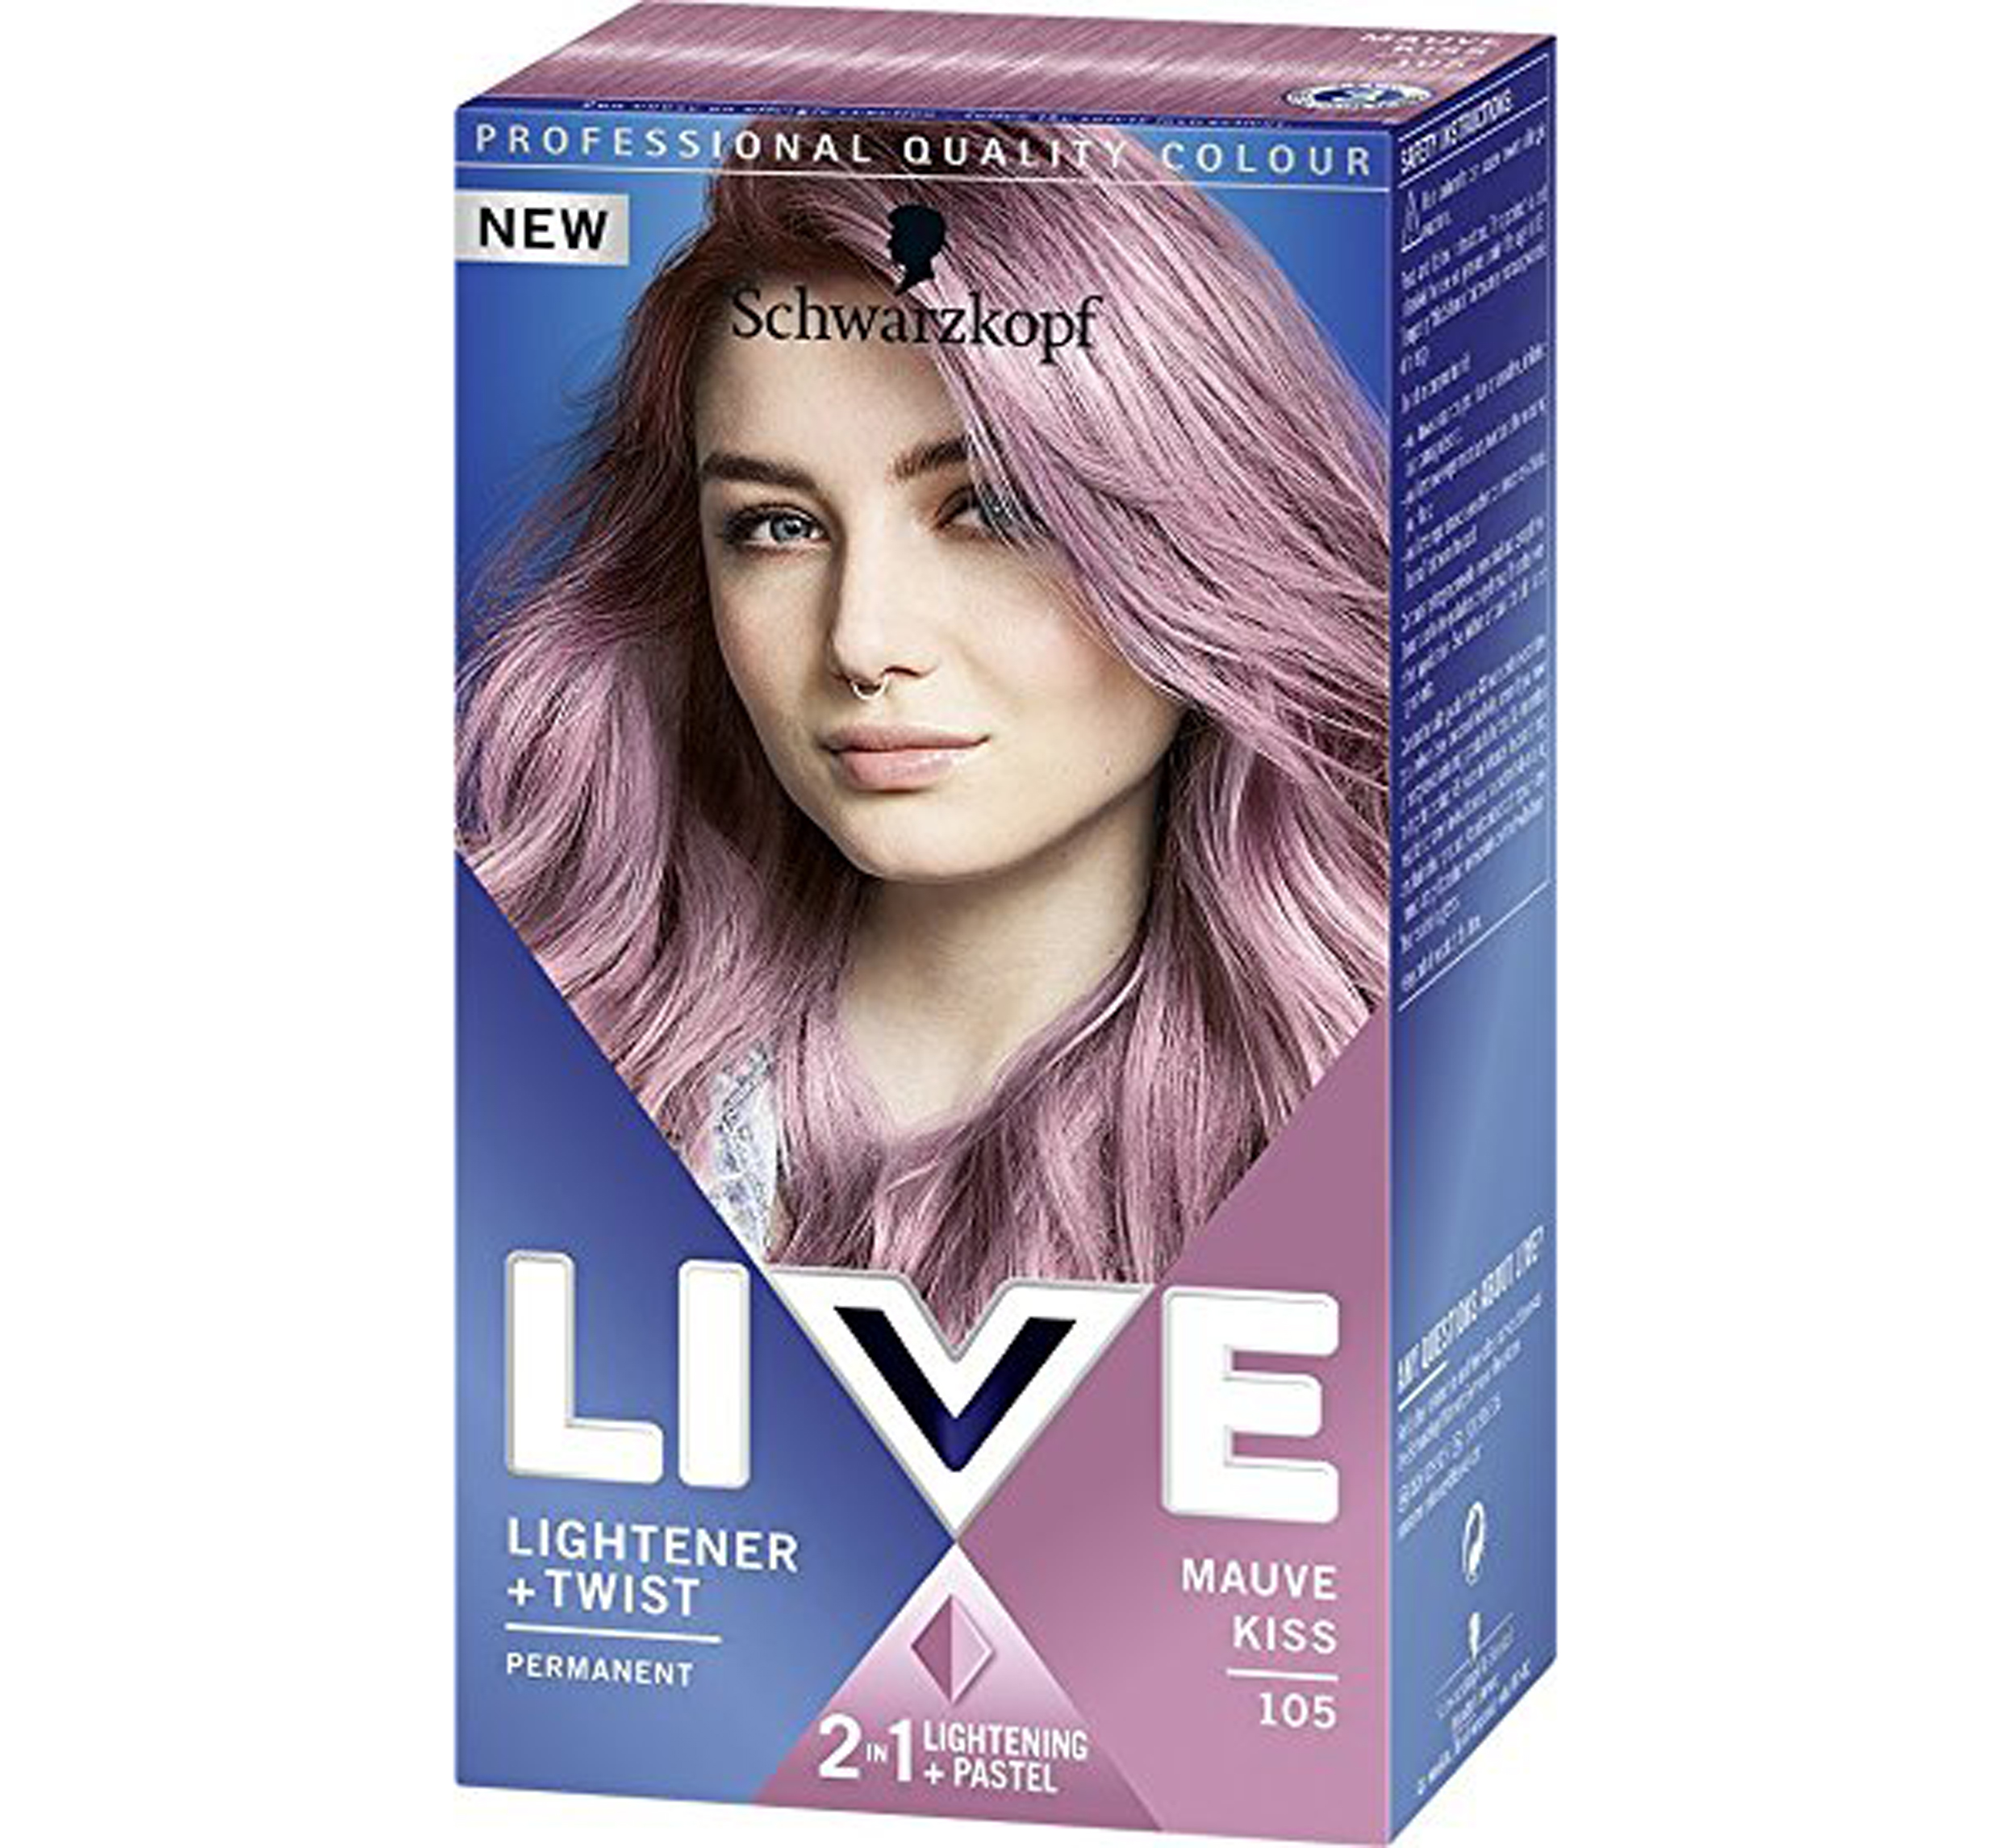 How to achieve lilac hair like Lady Gaga